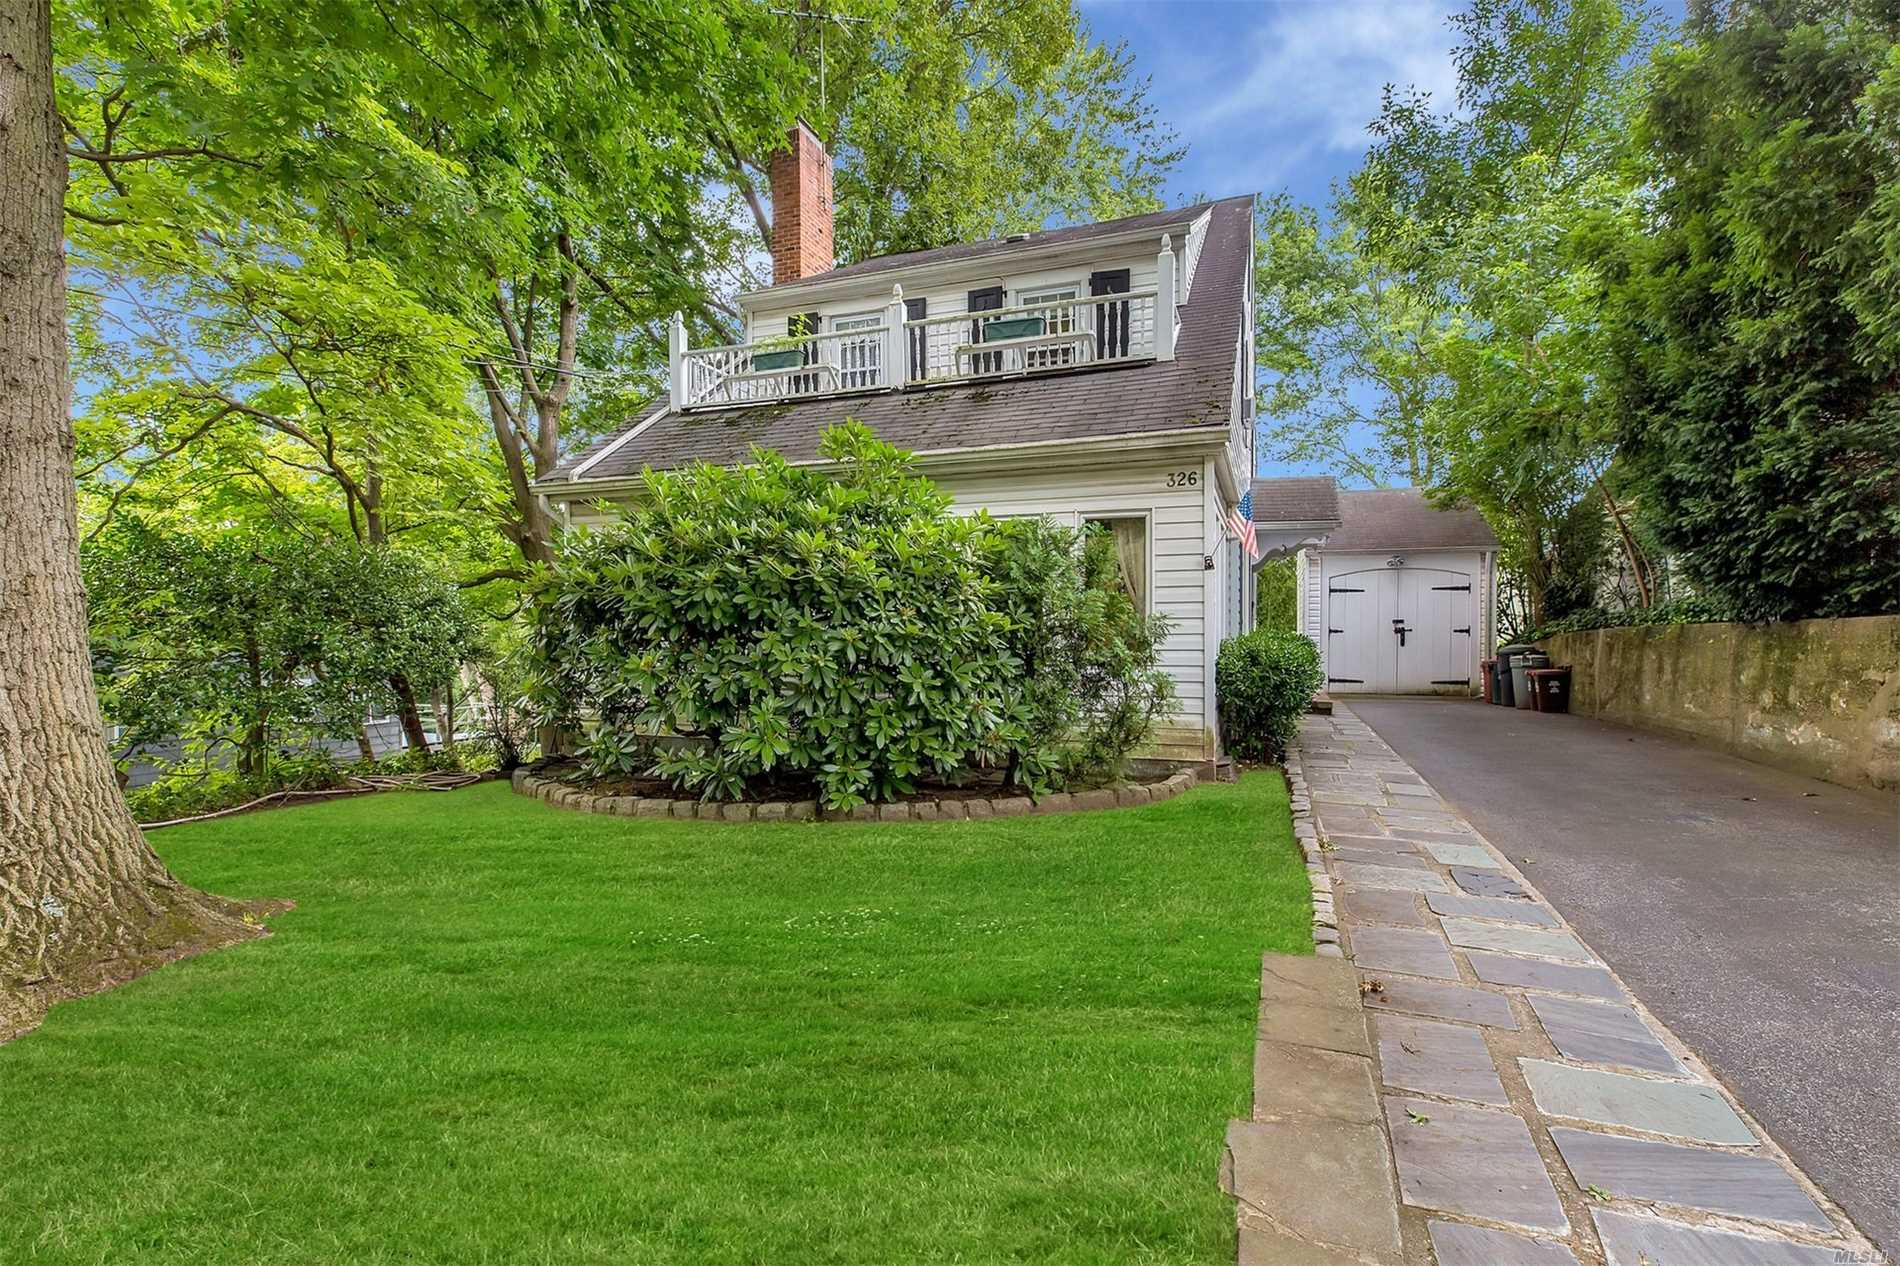 Charming 1920 Side Hall Colonial With 4 Bedrooms In The Landmarked Historic Hamlet Of Douglas Manor. This Waterfront Community Offers A 30 Minute Lirr Commute To Nyc, Award Winning Schools, Close To Restaurants And Shops. Enjoy Playing Ball At Memorial Field, Enjoying Sunsets At The Dock, Mooring Rights Or Enjoying The Vistas Of Little Neck Bay Along Shore Road.